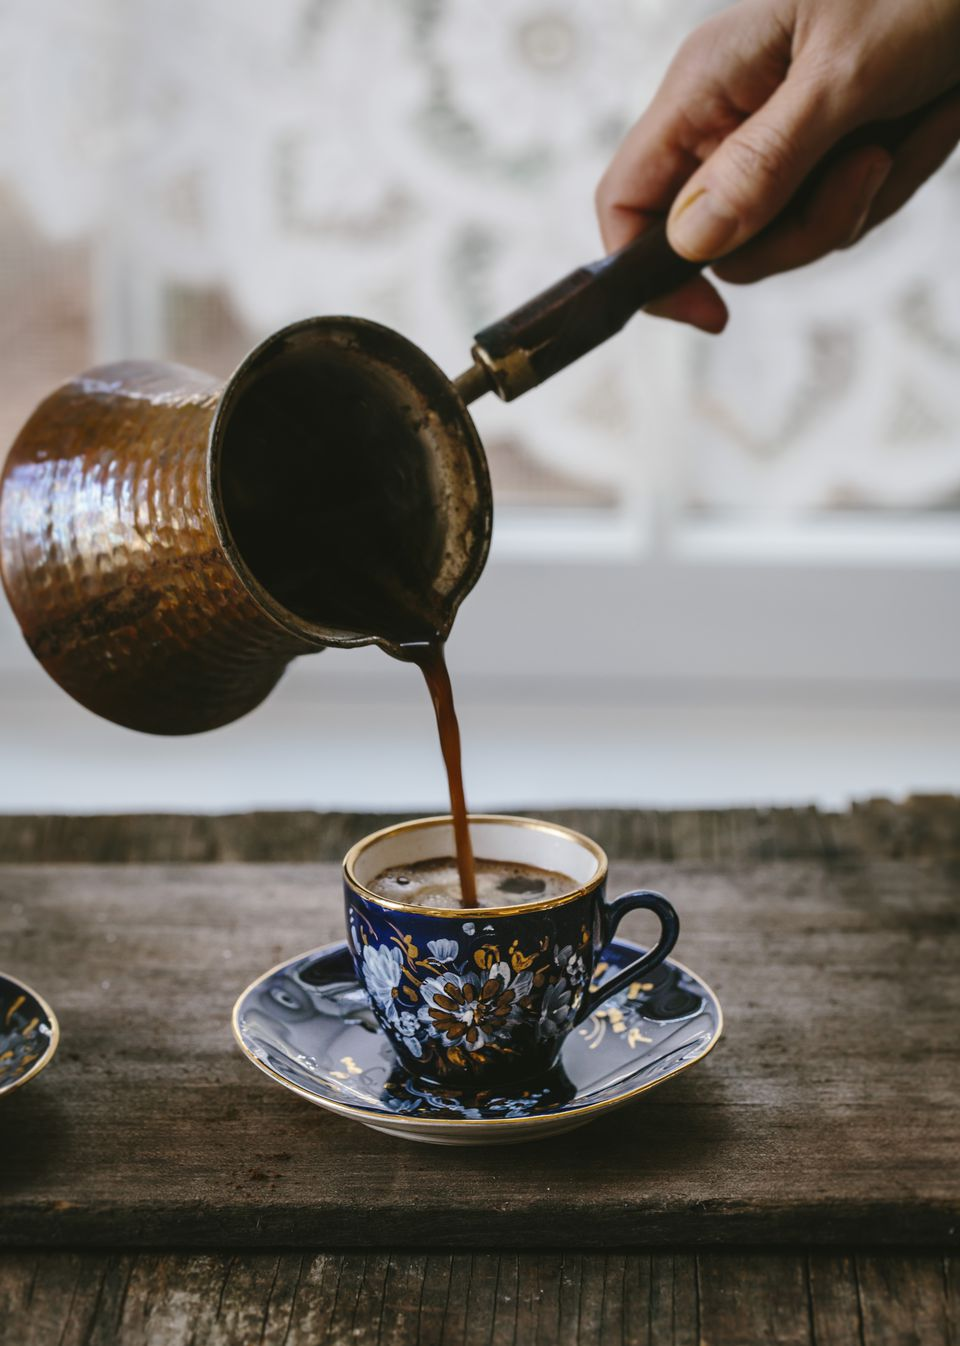 A woman is pouring Turkish Coffee in to a vintage Turkish coffee cup.